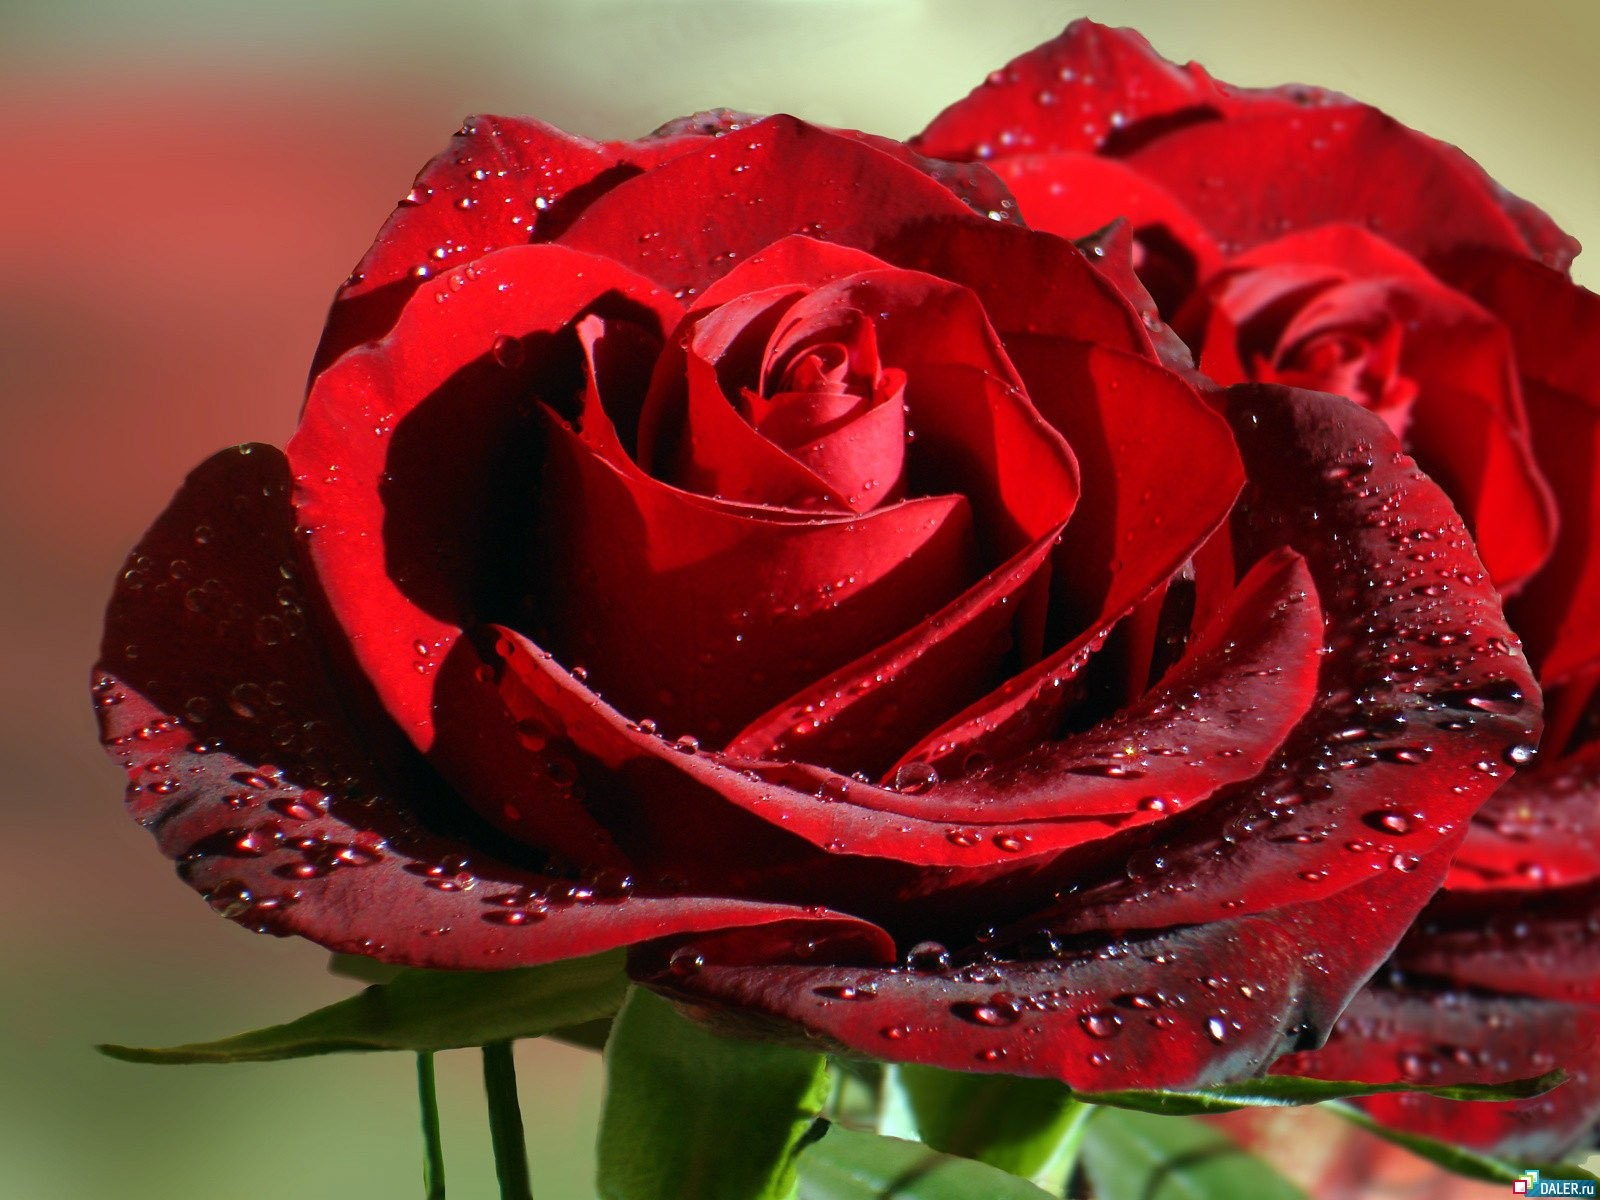 Big Red Roses Wallpaper 1600x1200 px